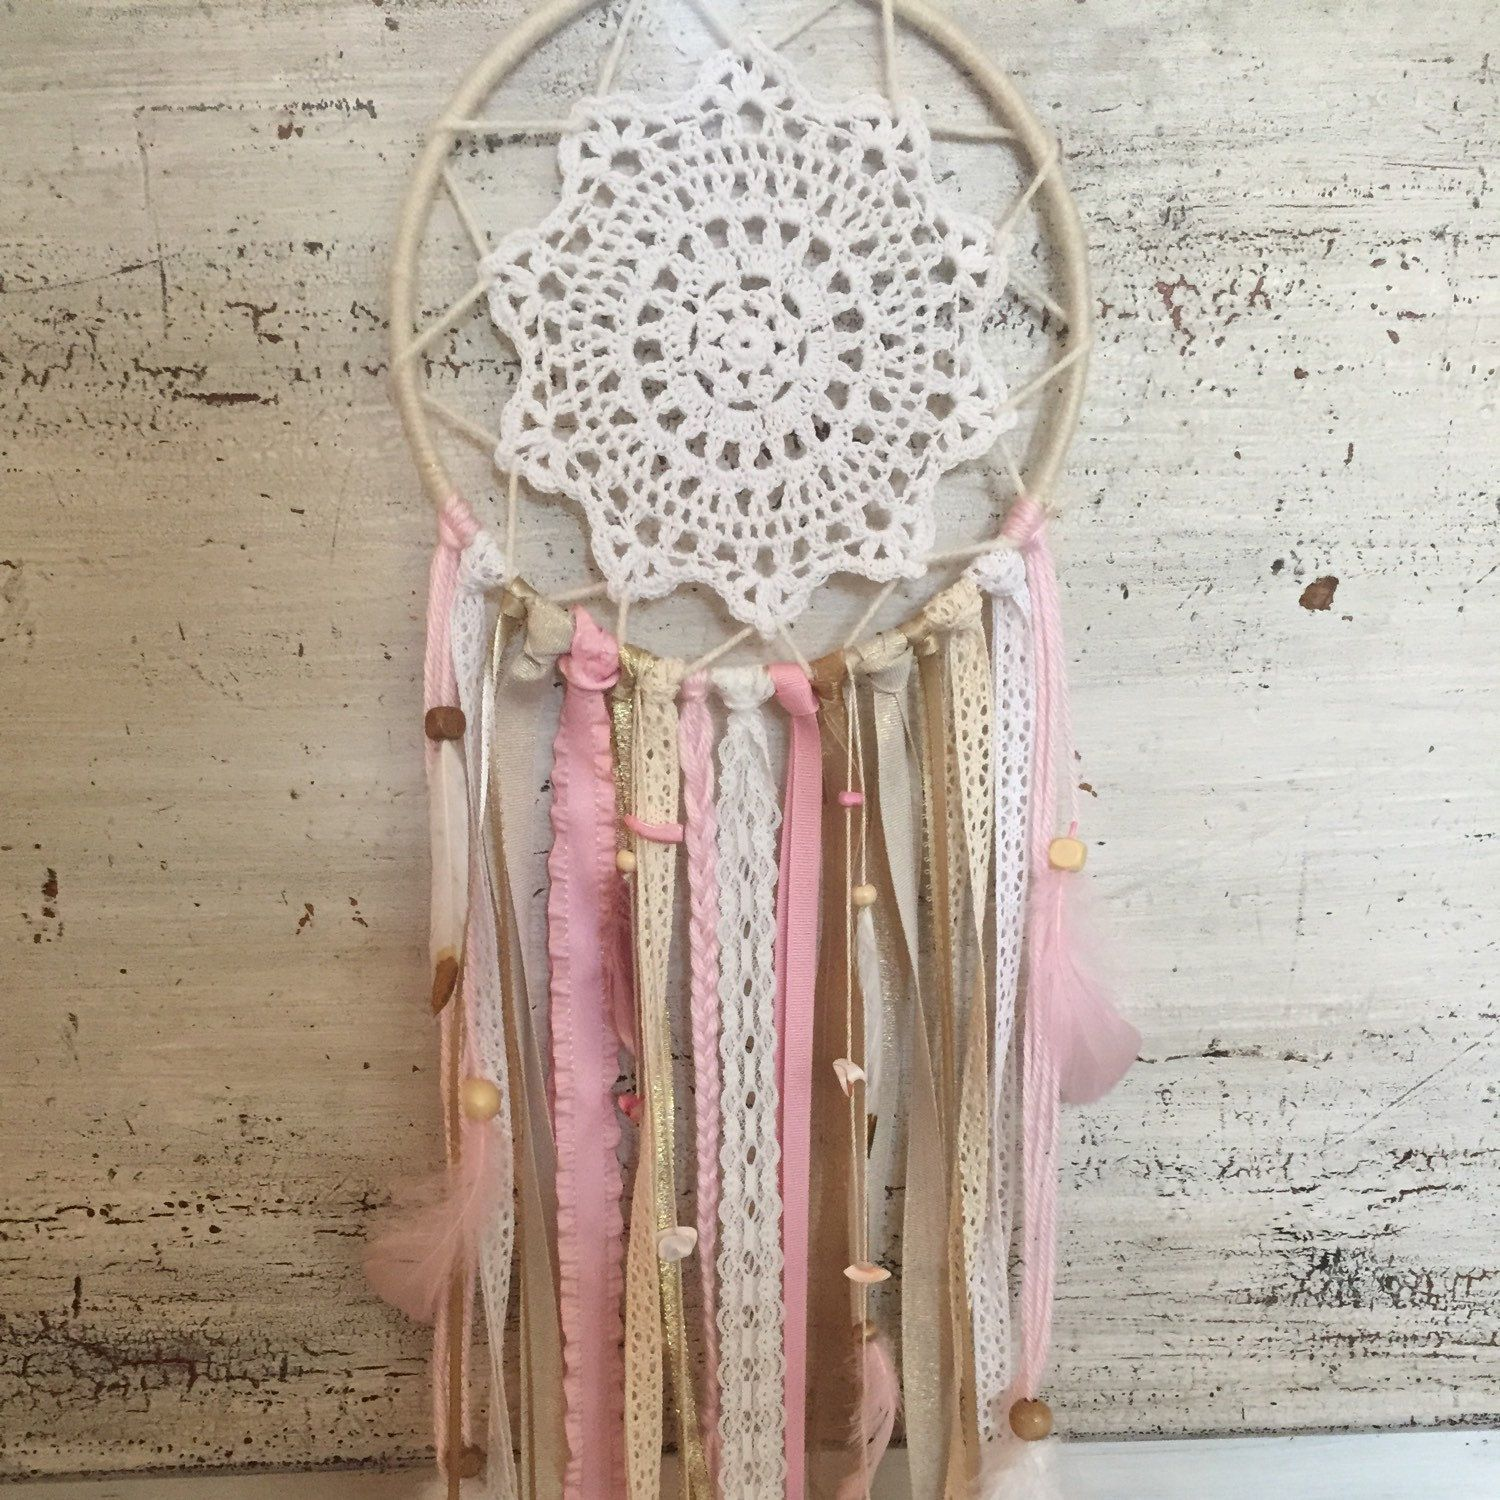 Schlafzimmer Deko Traumfänger Pink And Gold Dream Catcher Pink Dreamcatcher Von